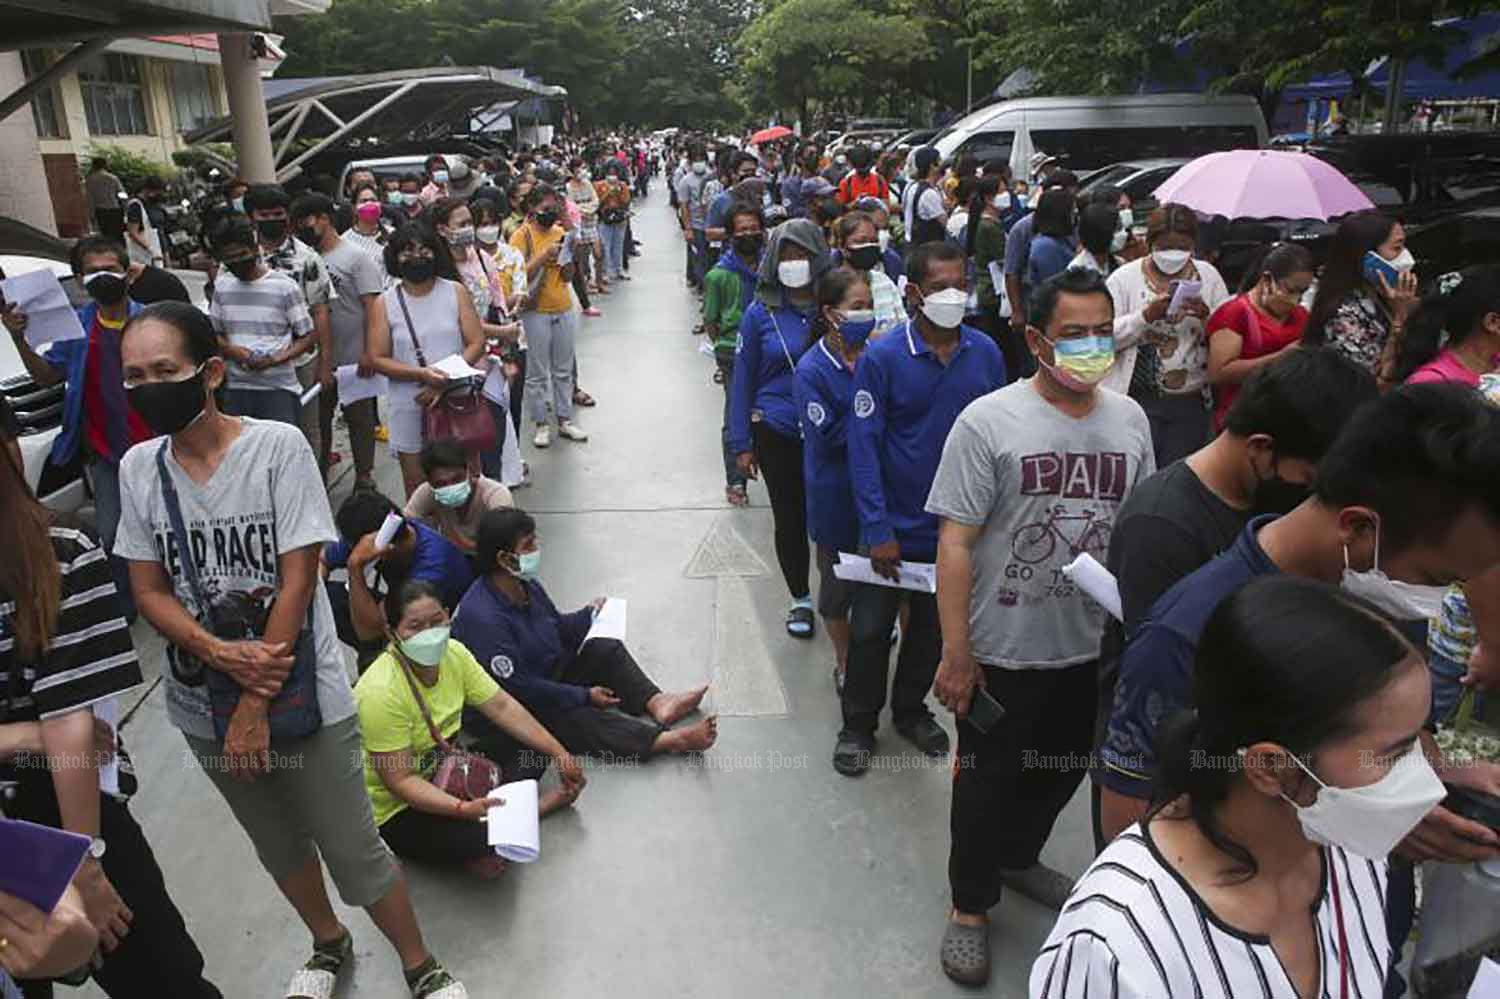 People wait to receive a Covid-19 vaccine in the parking lot at the Nonthaburi  municipal office. The municipality is offering 500 Sinopharm jabs each day on a walk-in basis to individuals aged 18 and over who have yet to register for vaccination, until the supply runs out. (Photo: Pattarapong Chatpattarasill)